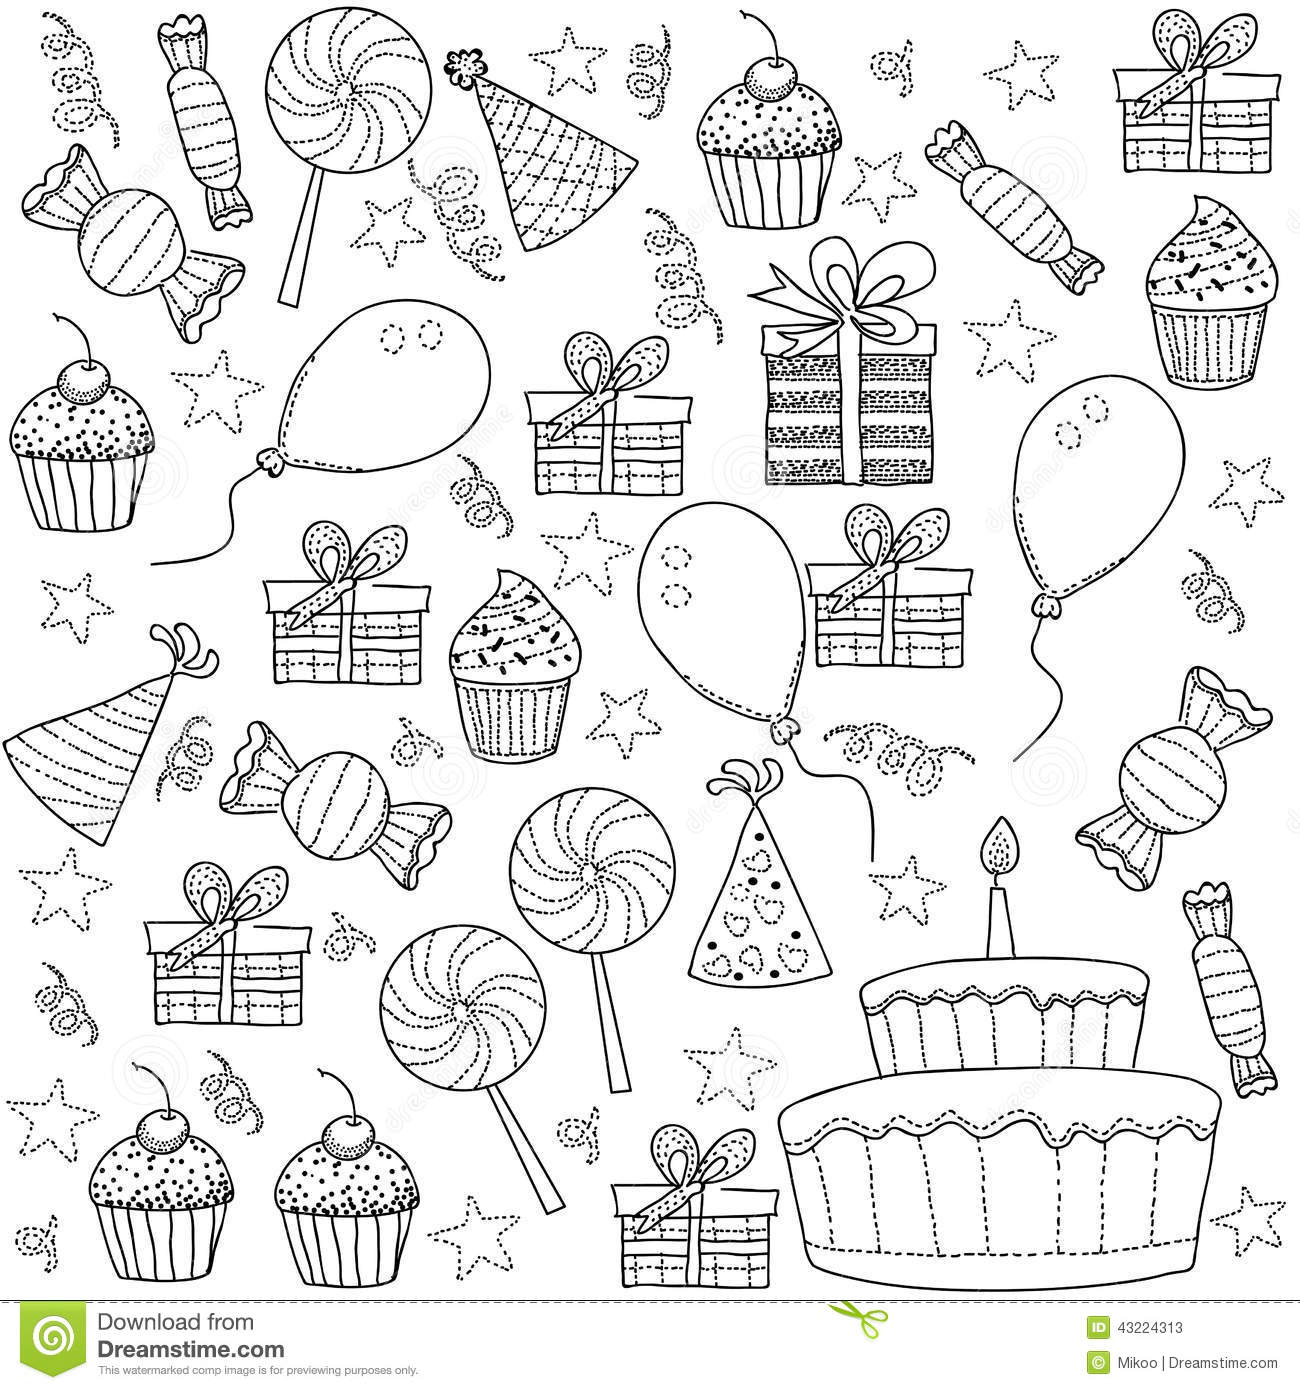 birthday sketch images ; cartoon-sketch-clipart-set-birthday-party-illustration-43224313